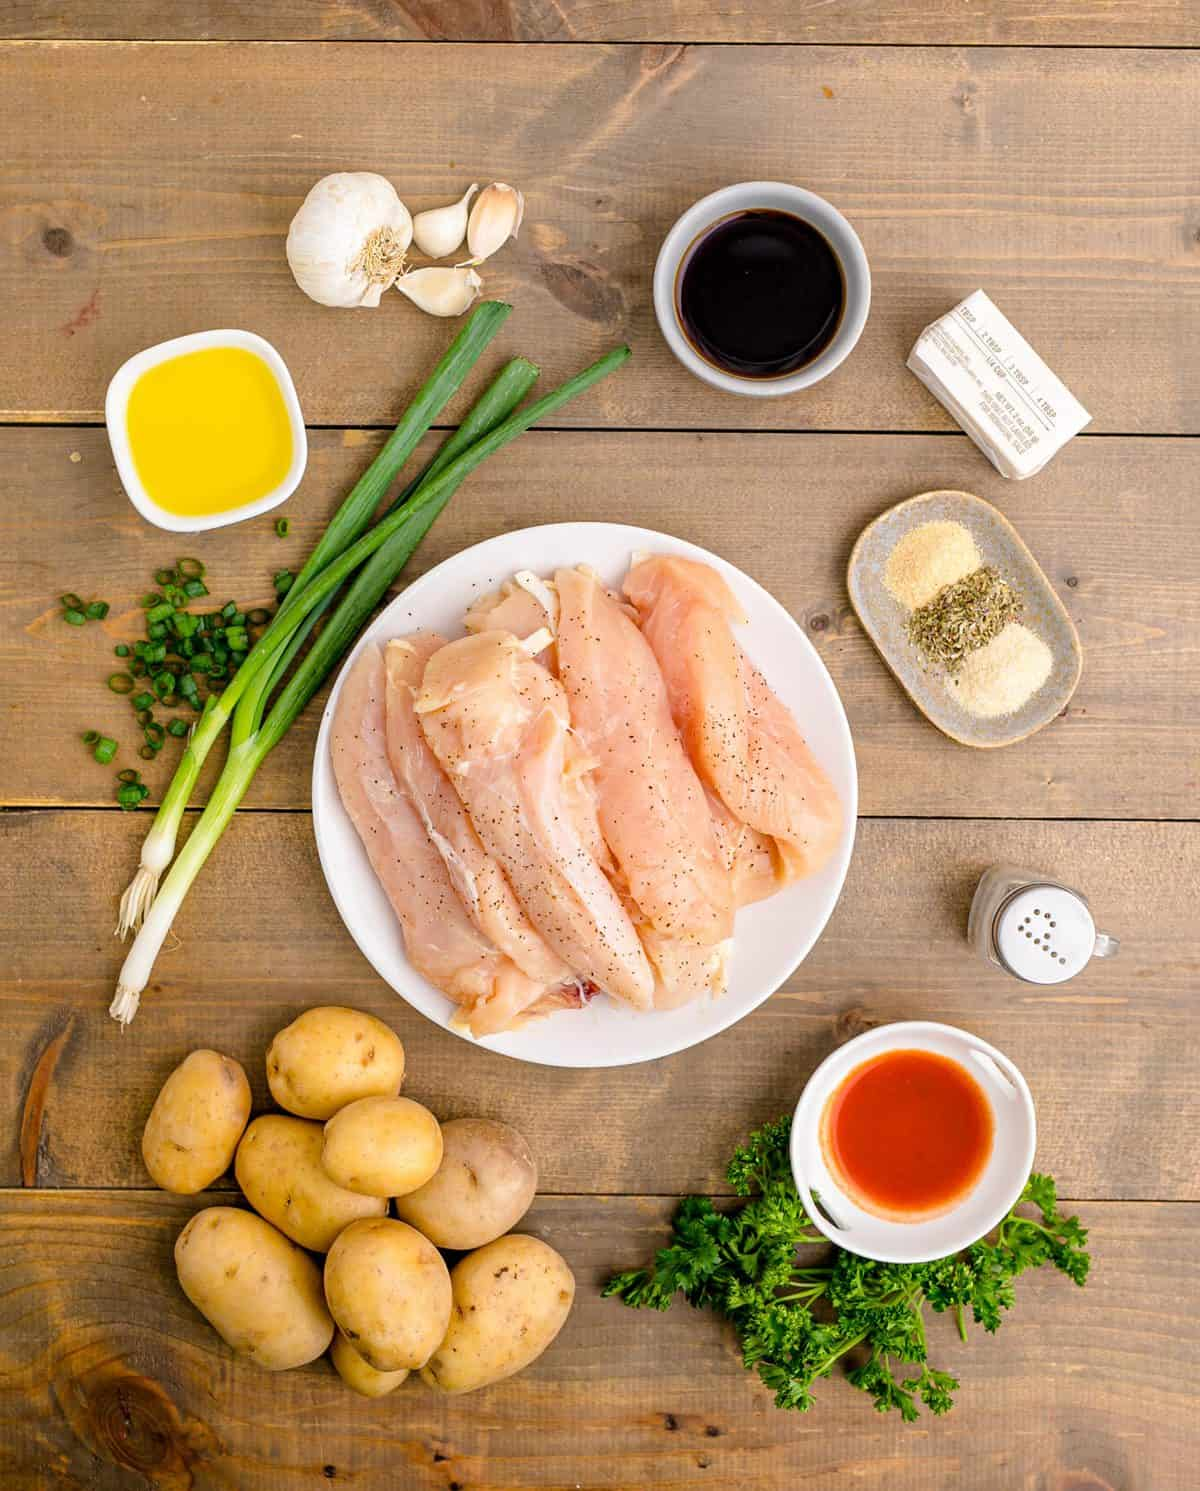 Ingredients needed to make Garlic Butter Chicken and Potatoes.